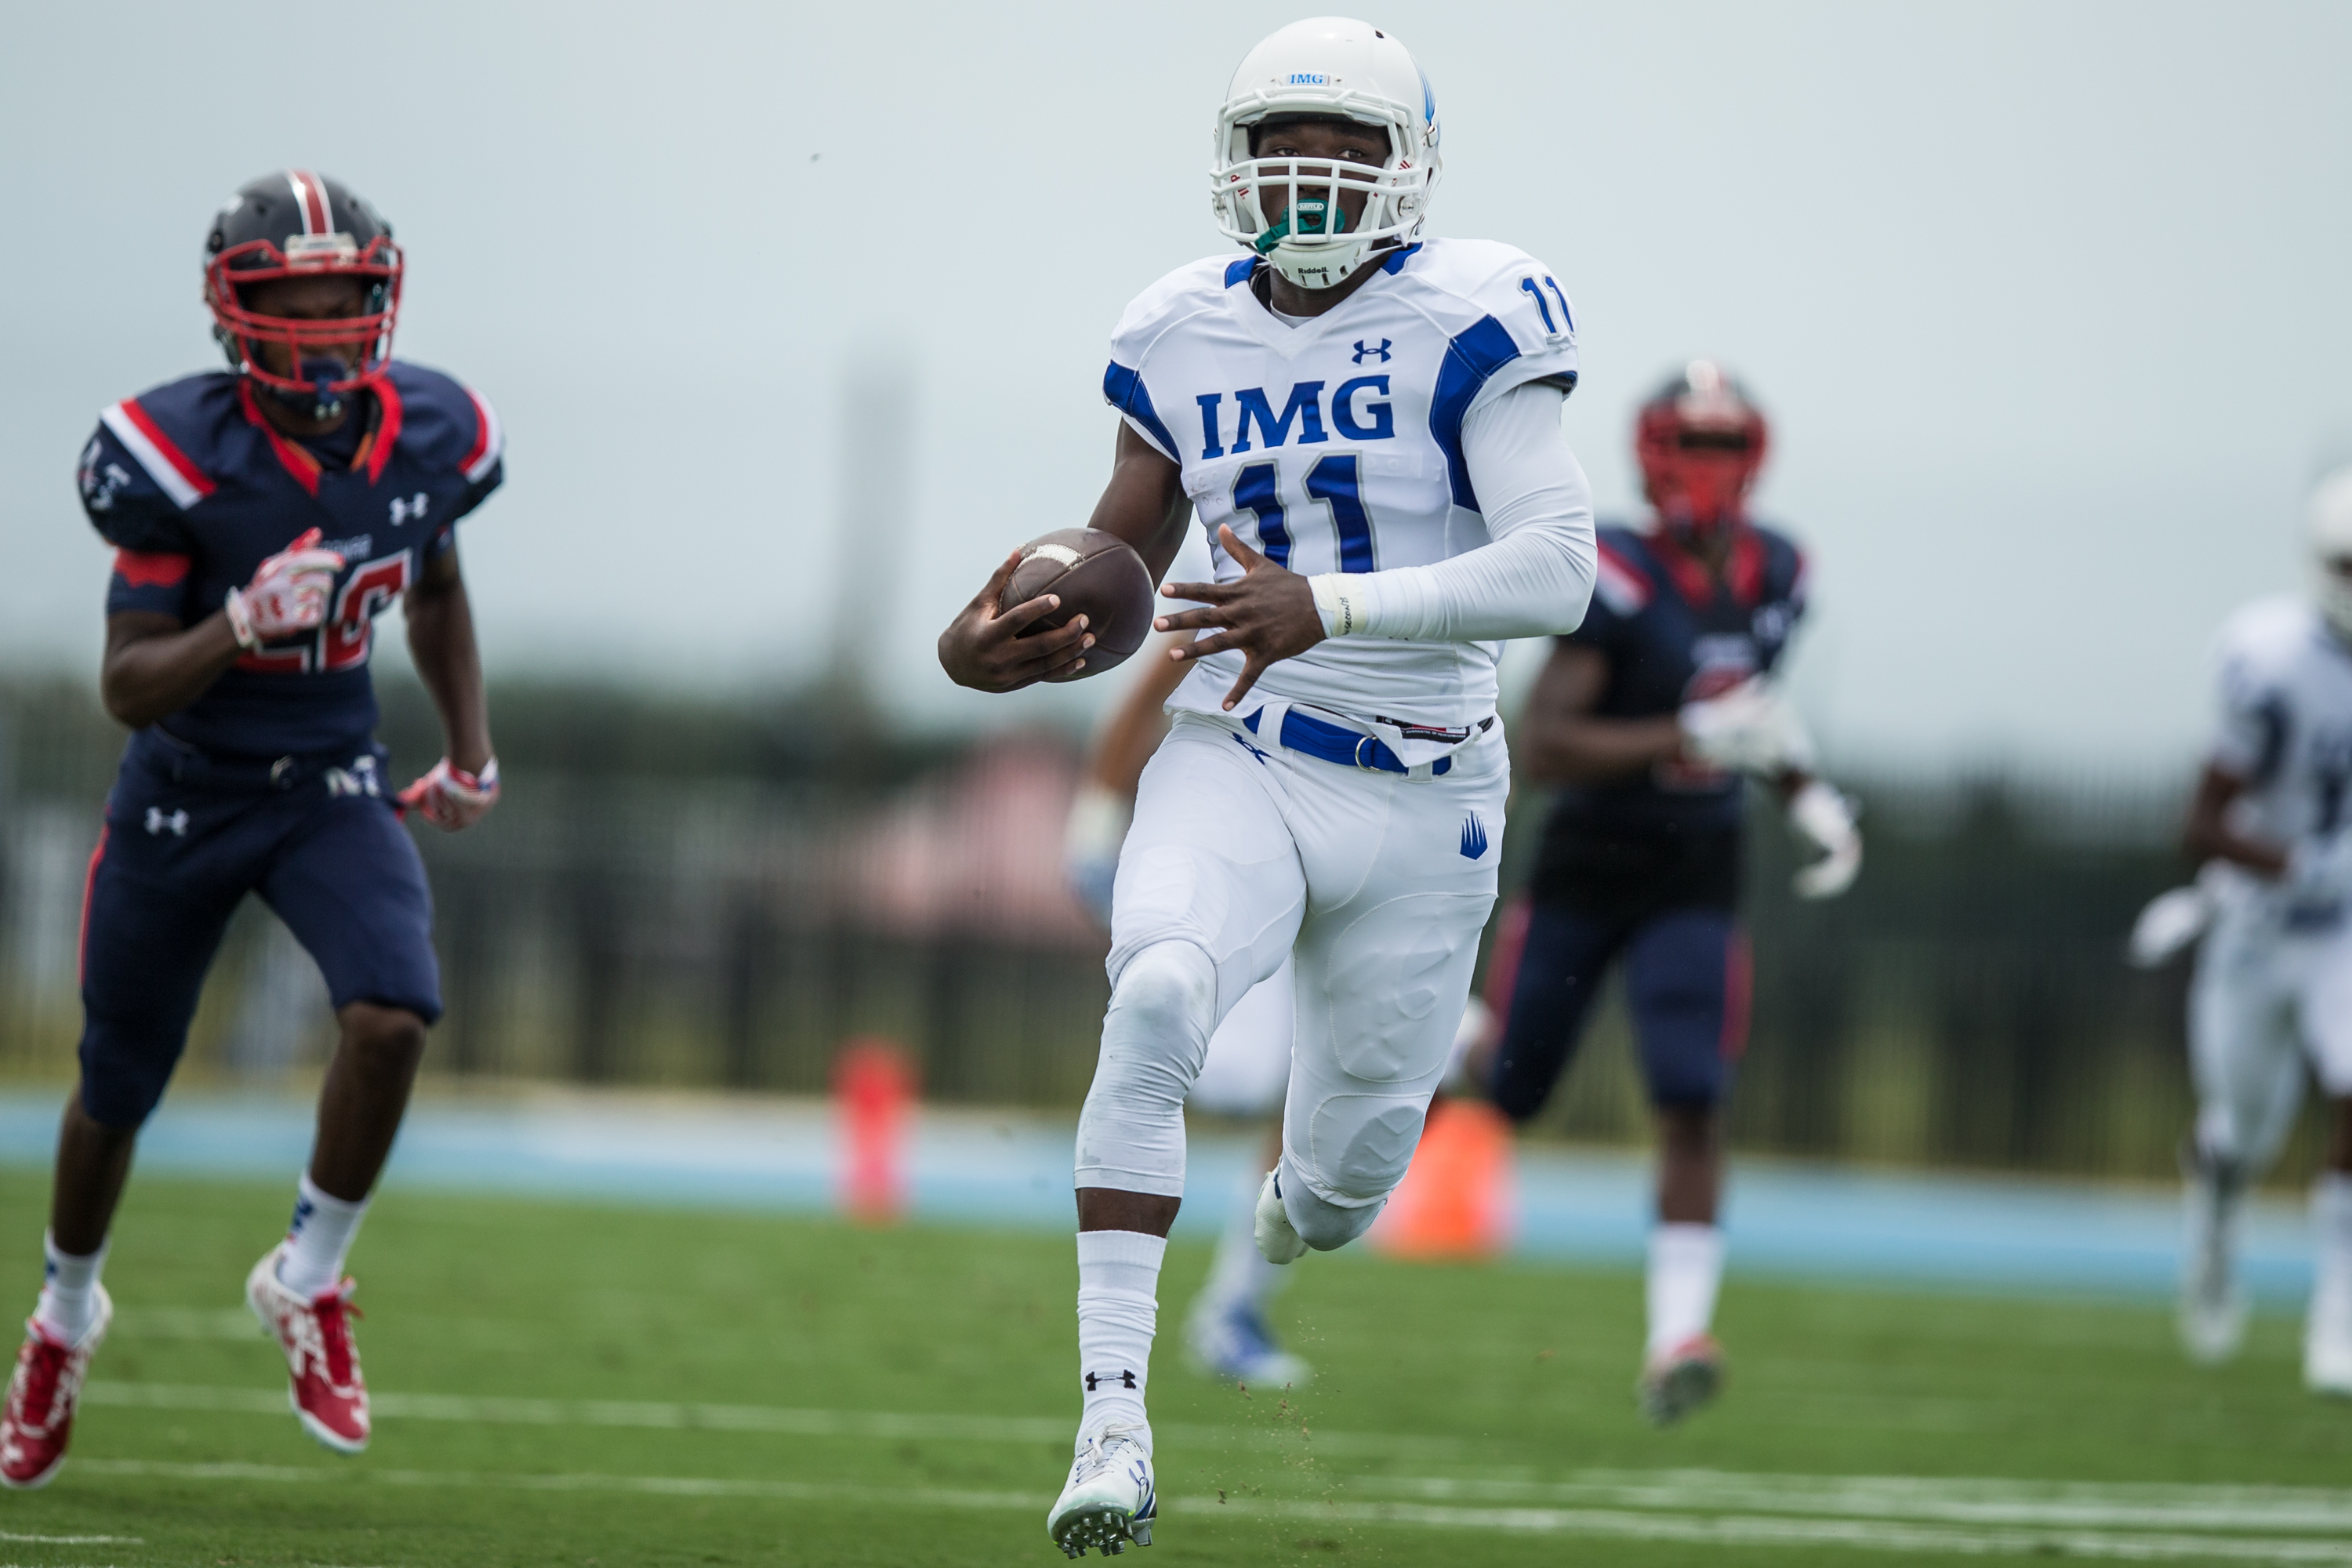 IMG Academy wide receiver Drake Davis (11) returns the ball in the start of the game for a touchdown on Sunday, Aug. 30, 2015 at IMG Academy. (Photo: Travis Pendergrass, Full Focus Photography).